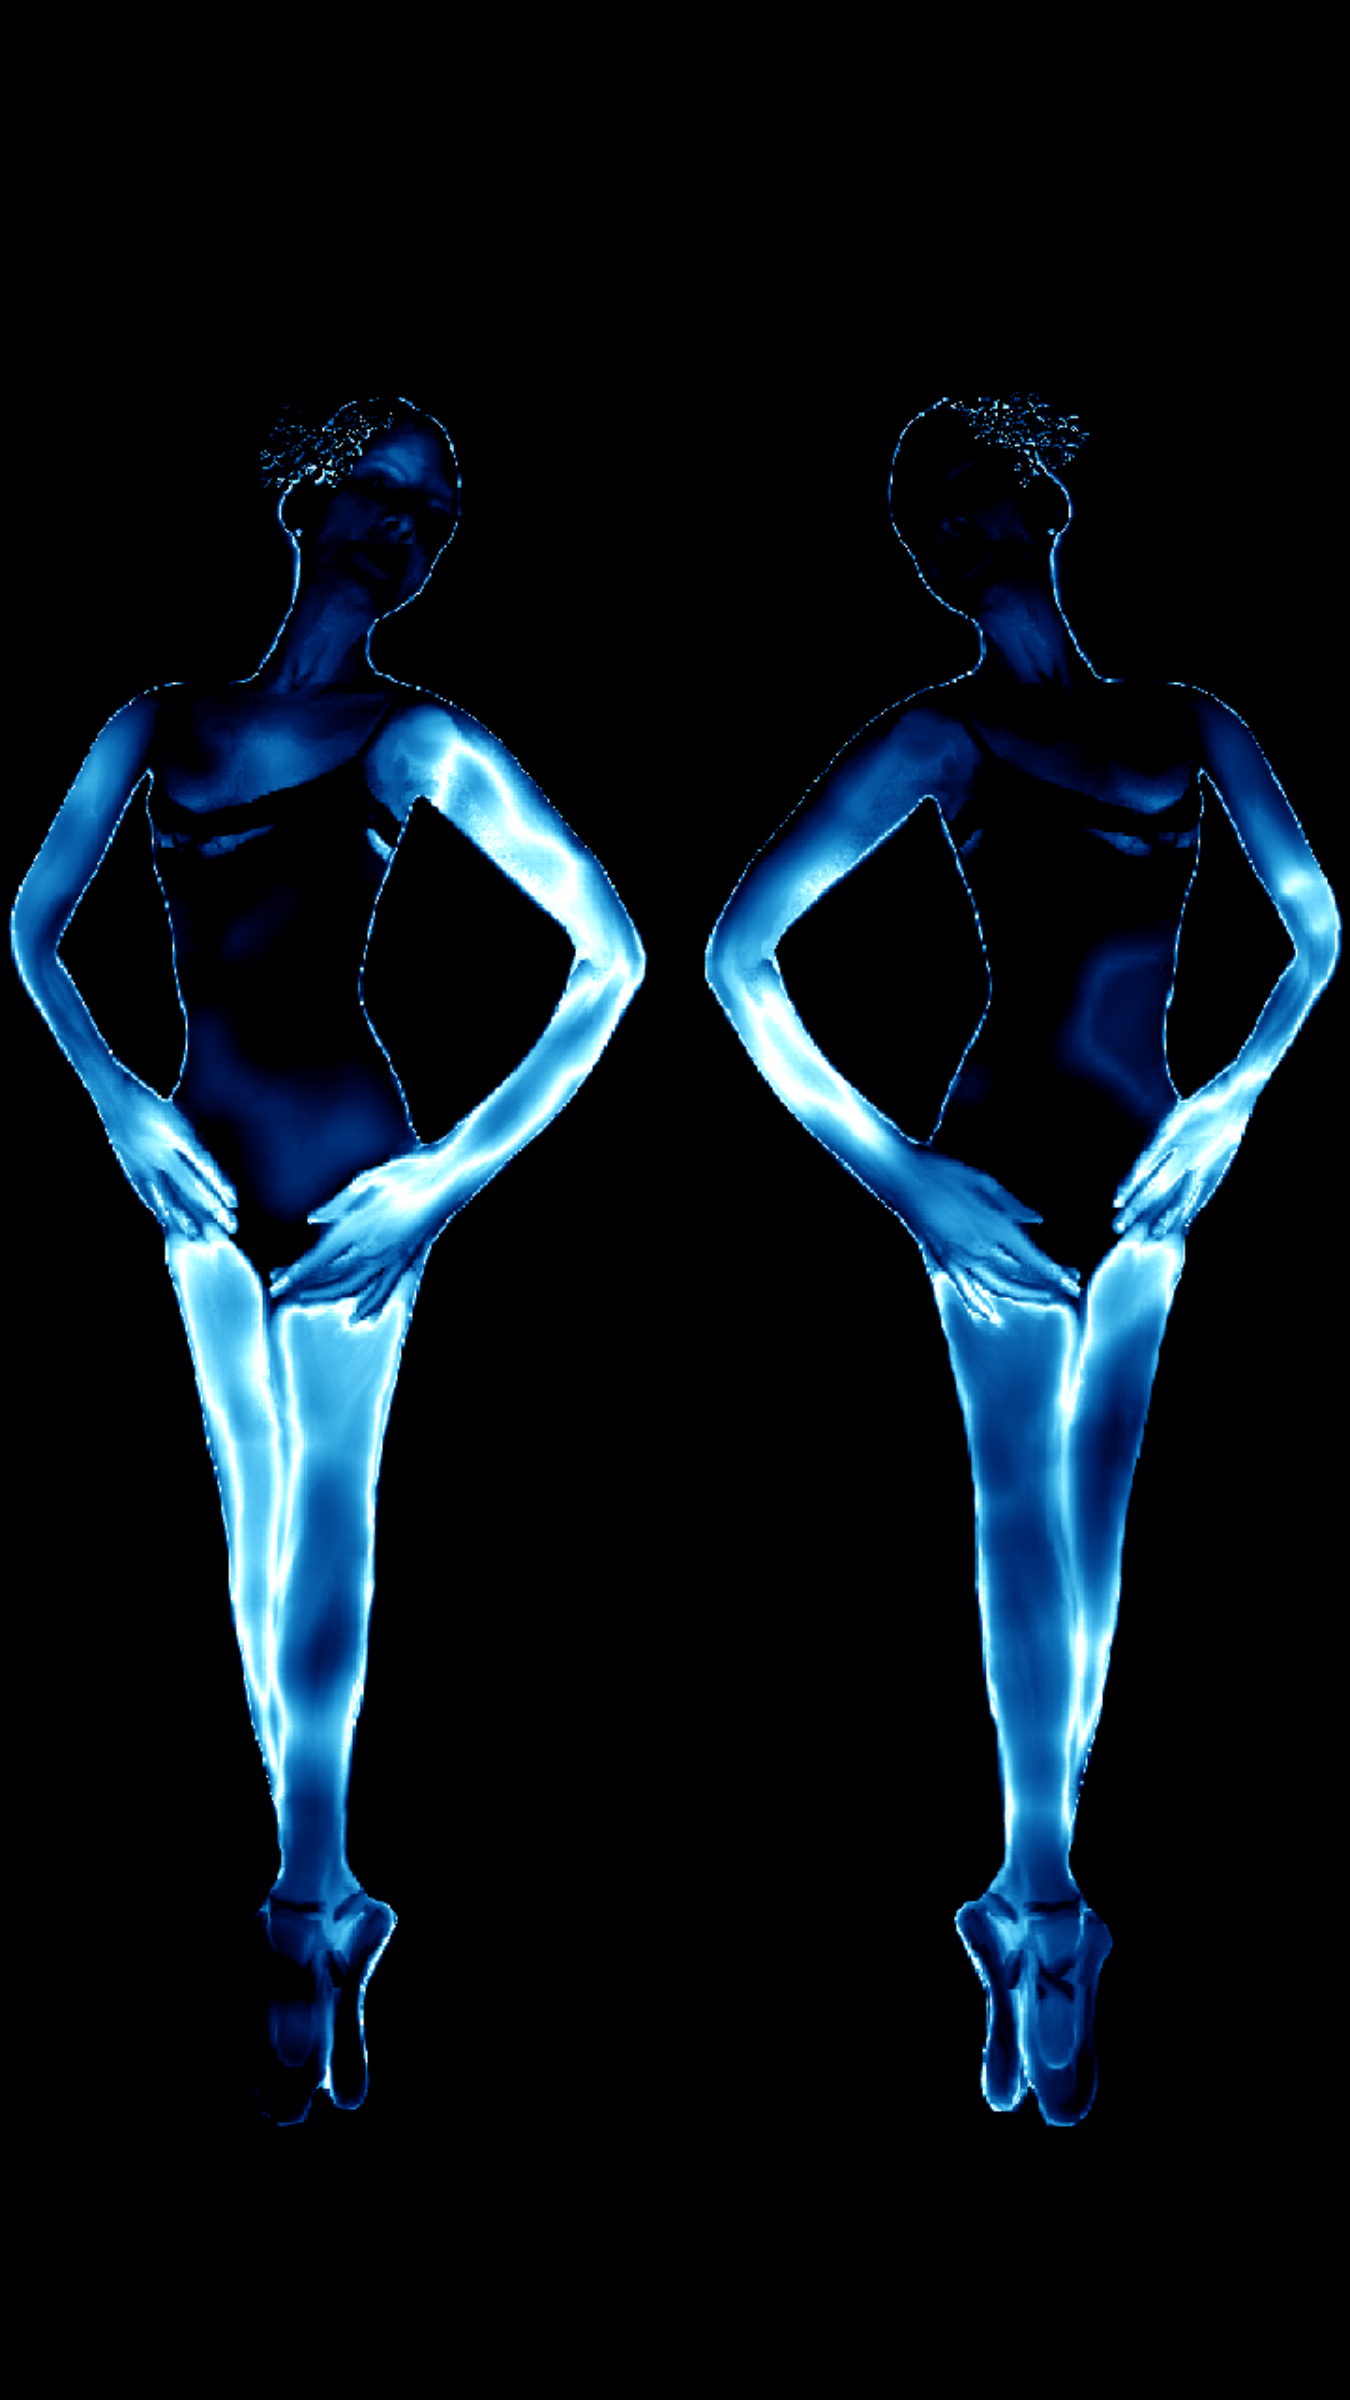 Blue Ballerinas Duet by Ariel-Arts